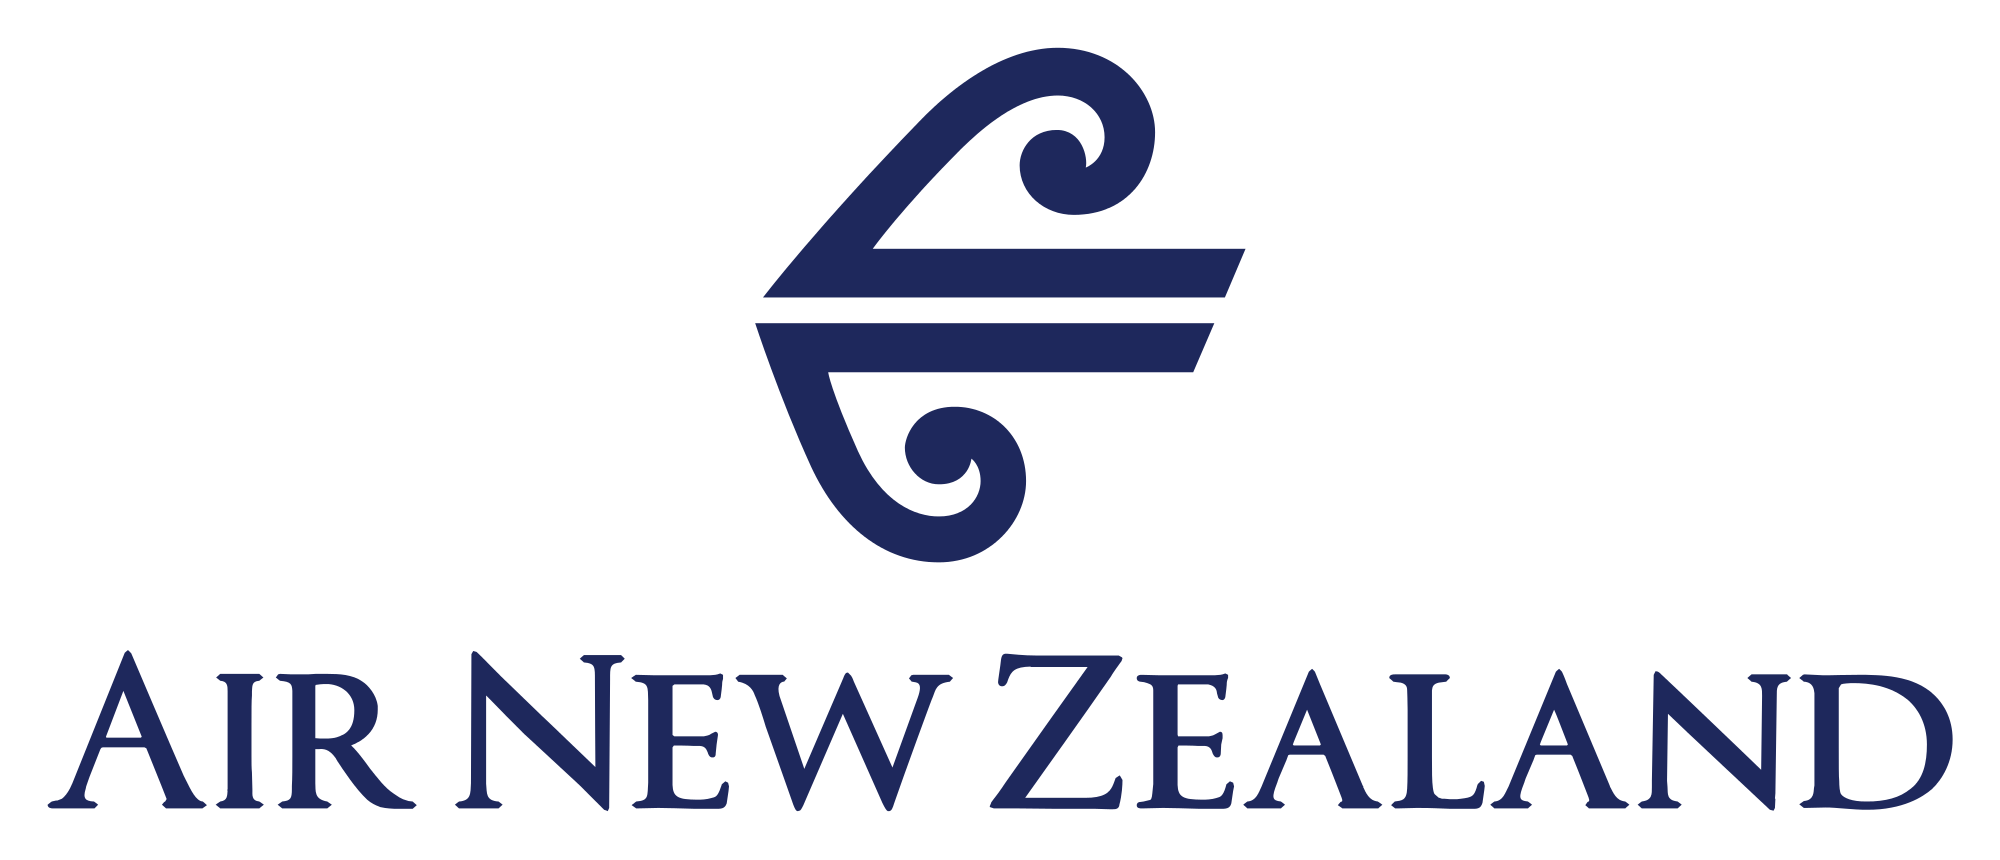 Air New Zealand PNG - 37737